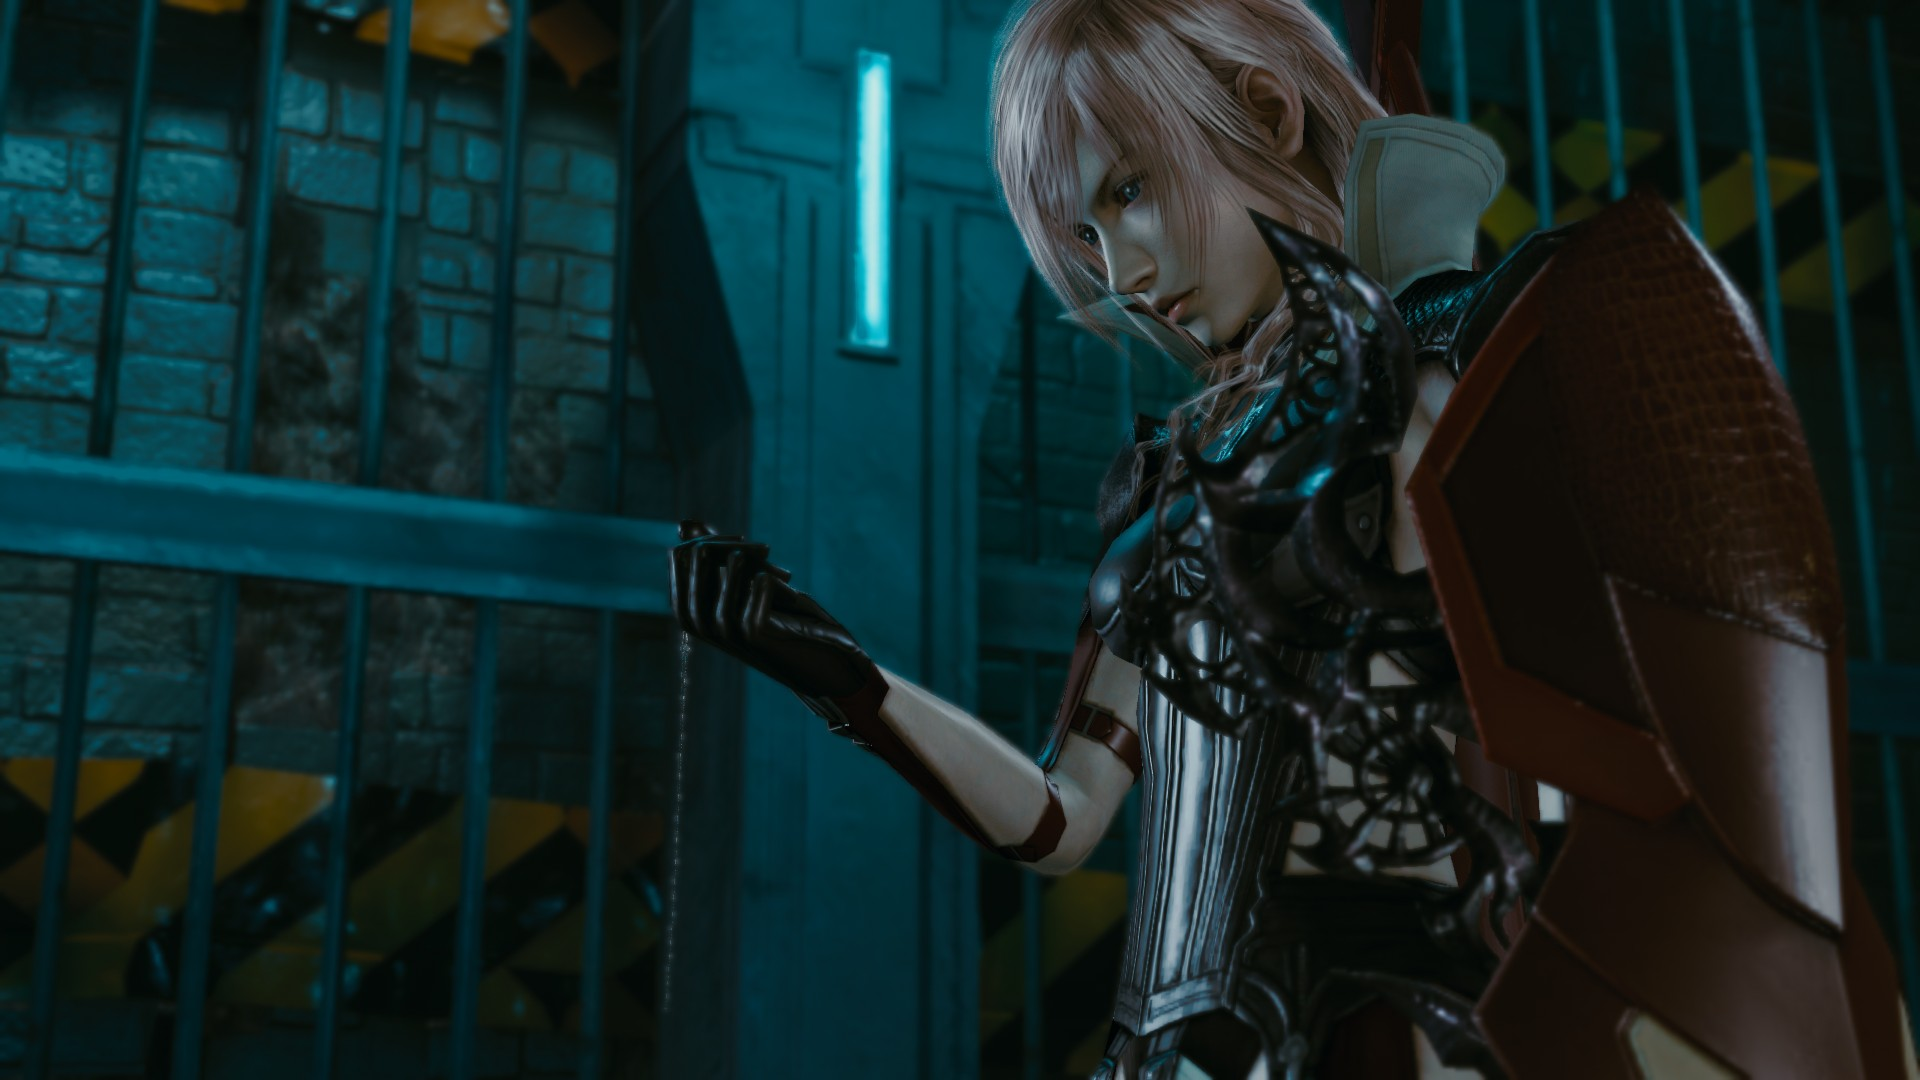 FFXIII: Lightning Returns will be limited to 1080p 60FPS on PC